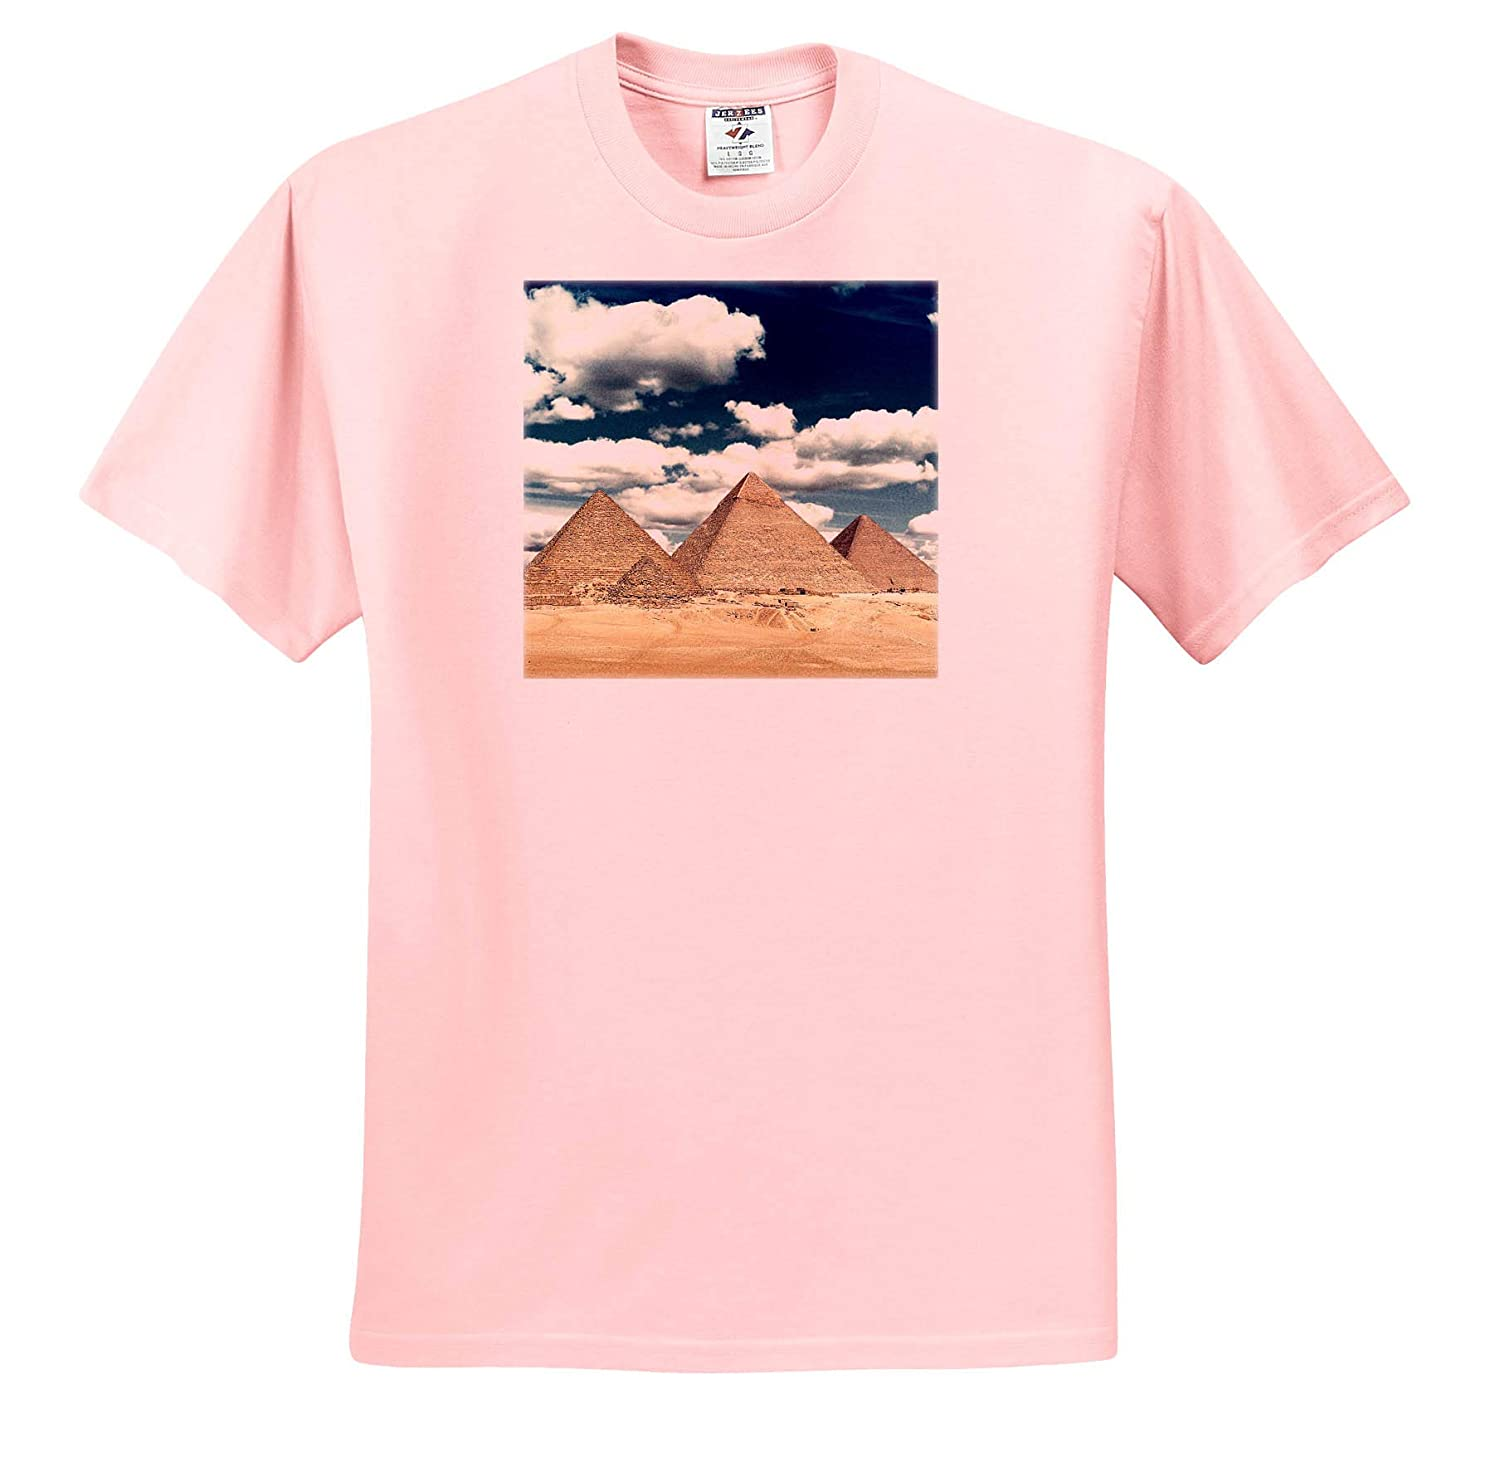 3dRose Perkins Designs Egypt with Blur Edges T-Shirts Photographic Collage of The Three Pyramids at Giza Photography